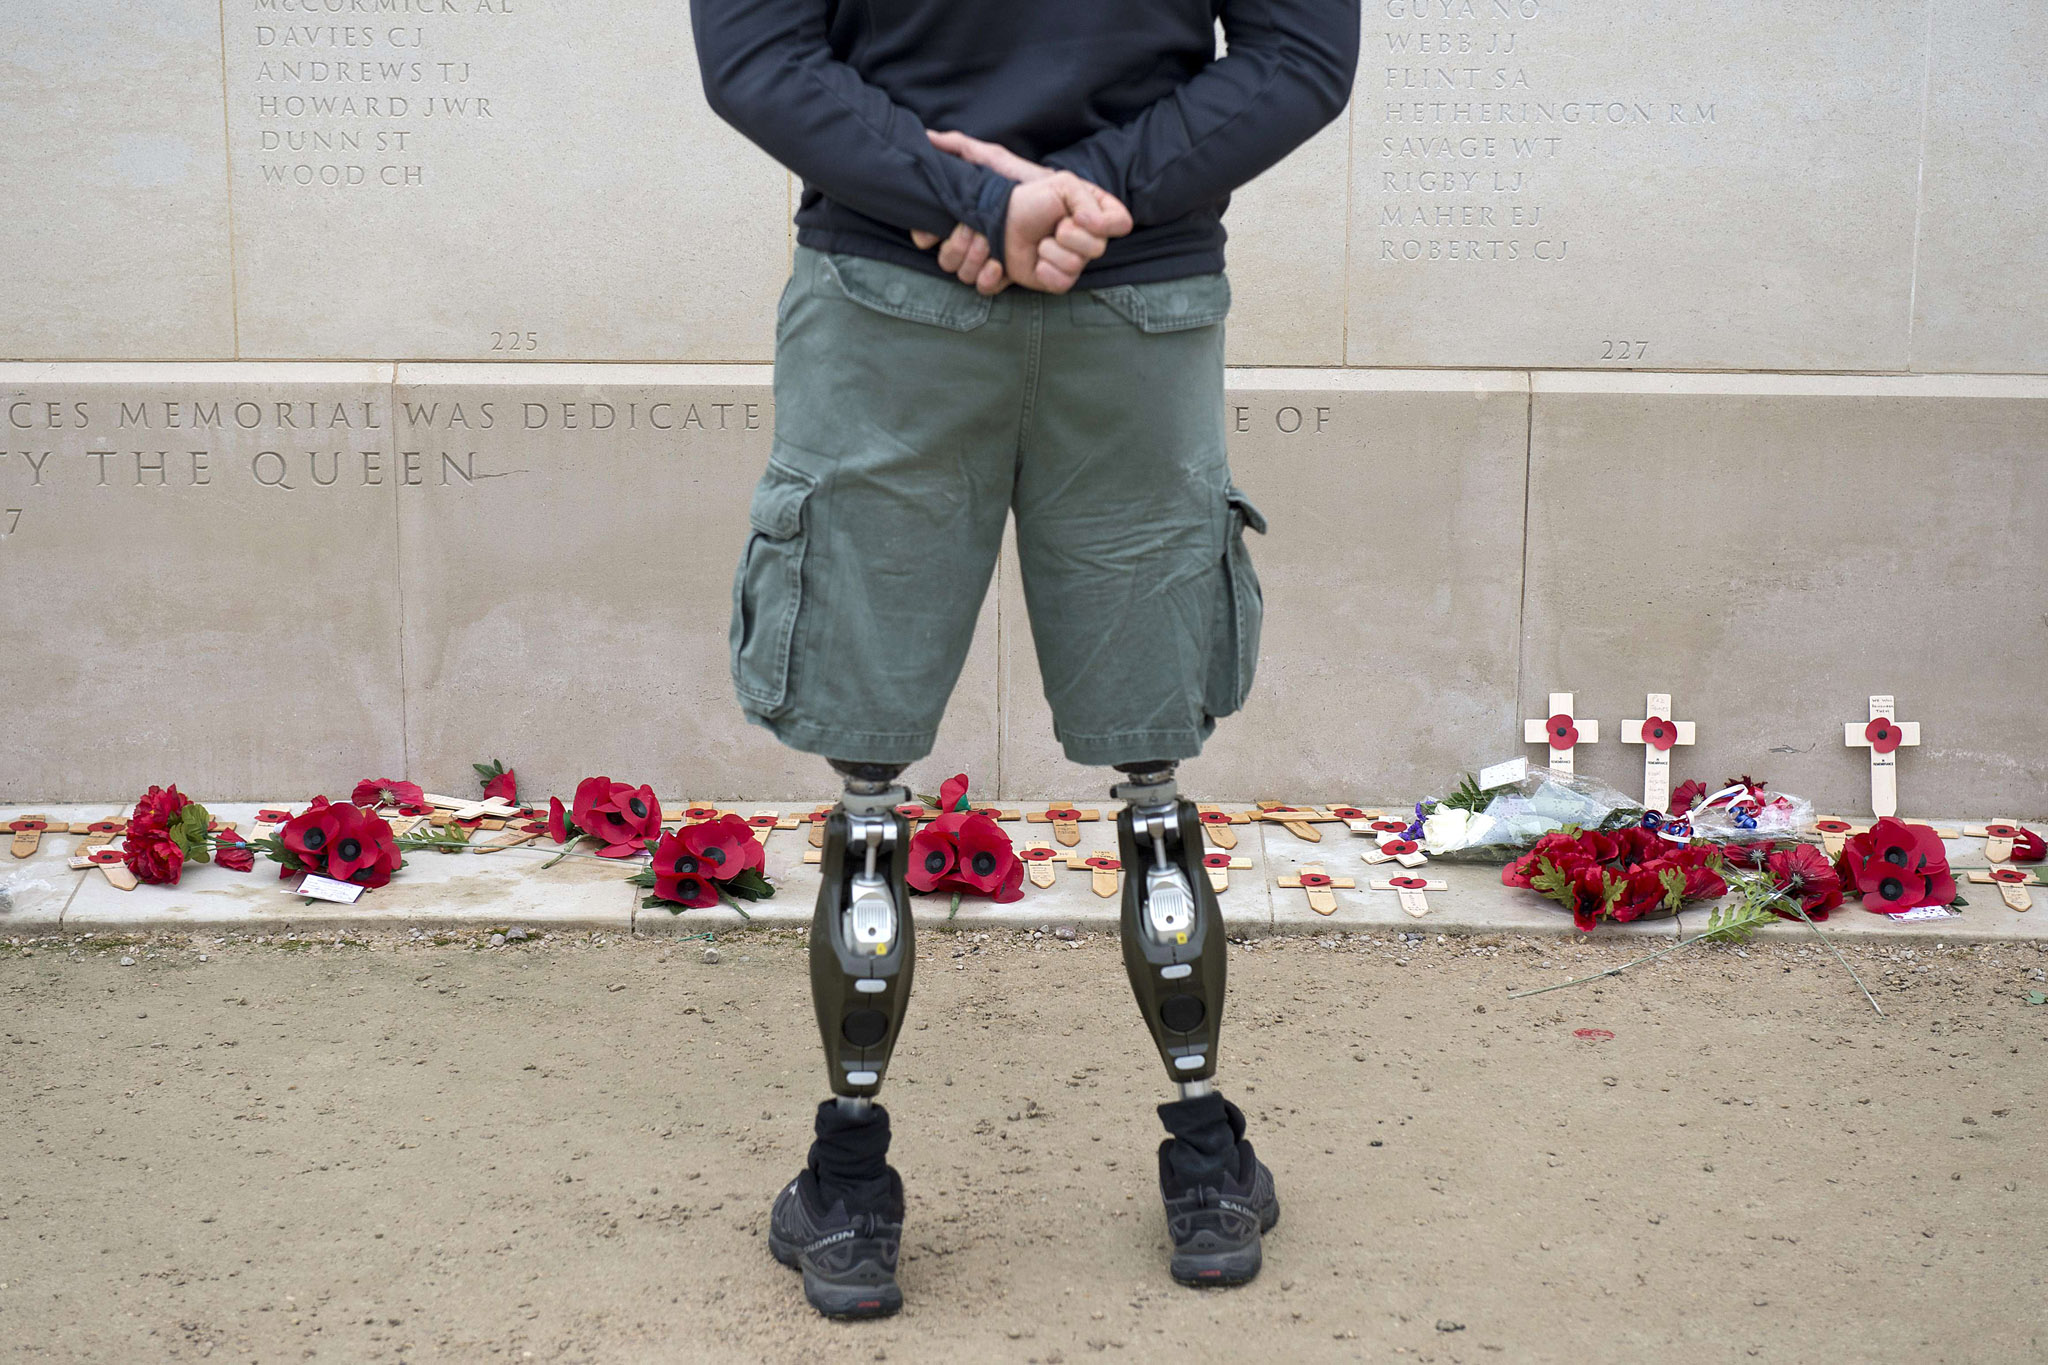 A member of the armed forces with prosth...A member of the armed forces with prosthetic legs pays his respects at the Armed Forces Memorial in the National Memorial Arboretum on Armistice Day near Lichfield, Staffordshire, central England, on November 11, 2014. In services around the country tributes were paid to the millions of British servicemen and women who have died in conflict since the start of the First World War 100 years ago. November 11 marks Armistice Day, the day on which a ceasefire came into effect in 1918 that ended the First World War on the Western Front.  AFP PHOTO / OLI SCARFFOLI SCARFF/AFP/Getty Images